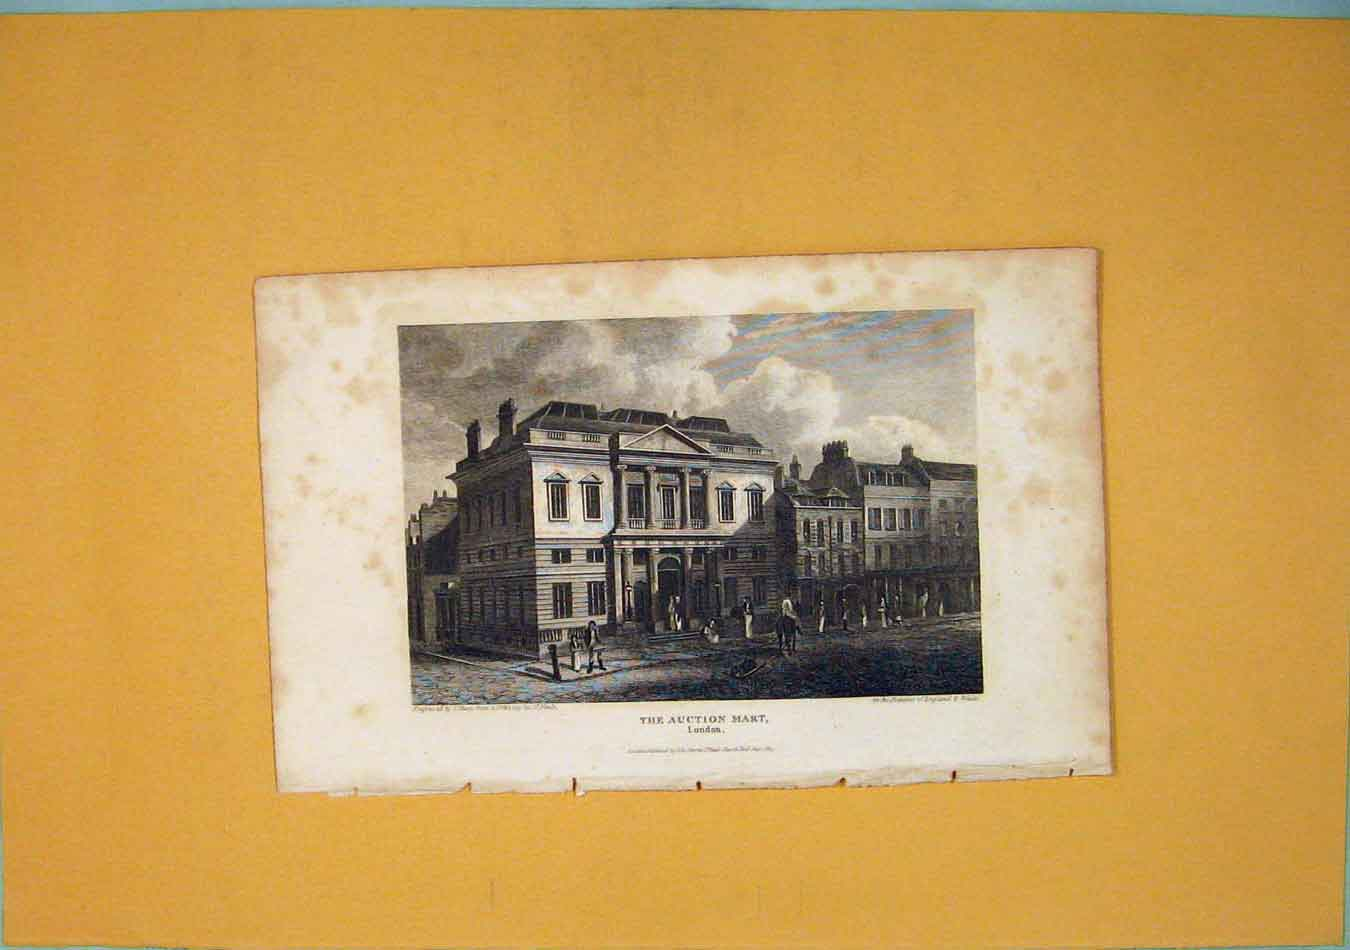 [Print Auction Mart London Fine Art C1831 726451 Old Original]